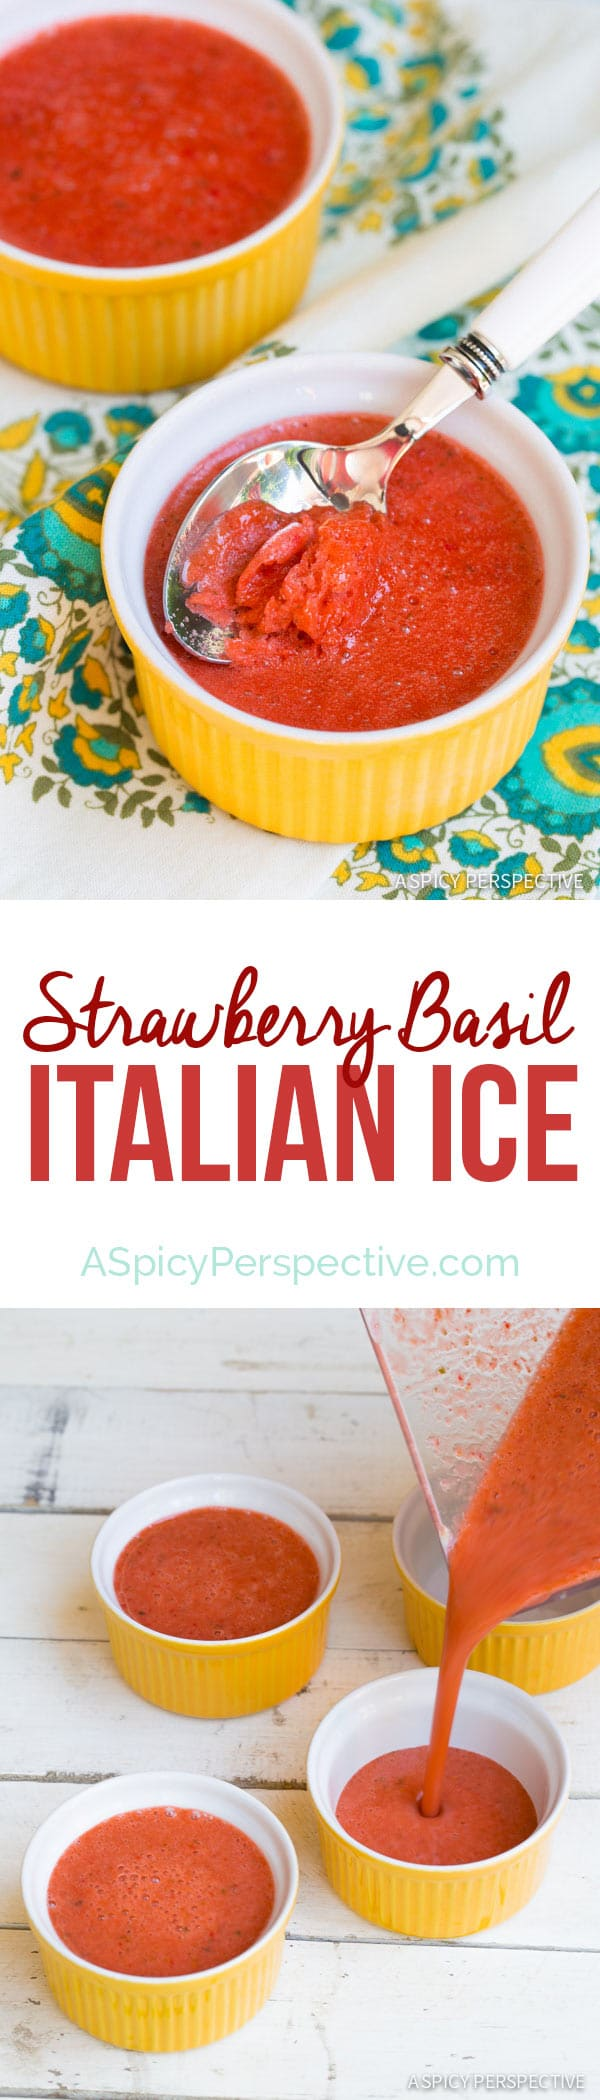 The Best Strawberry Basil Italian Ice on ASpicyPerspective.com